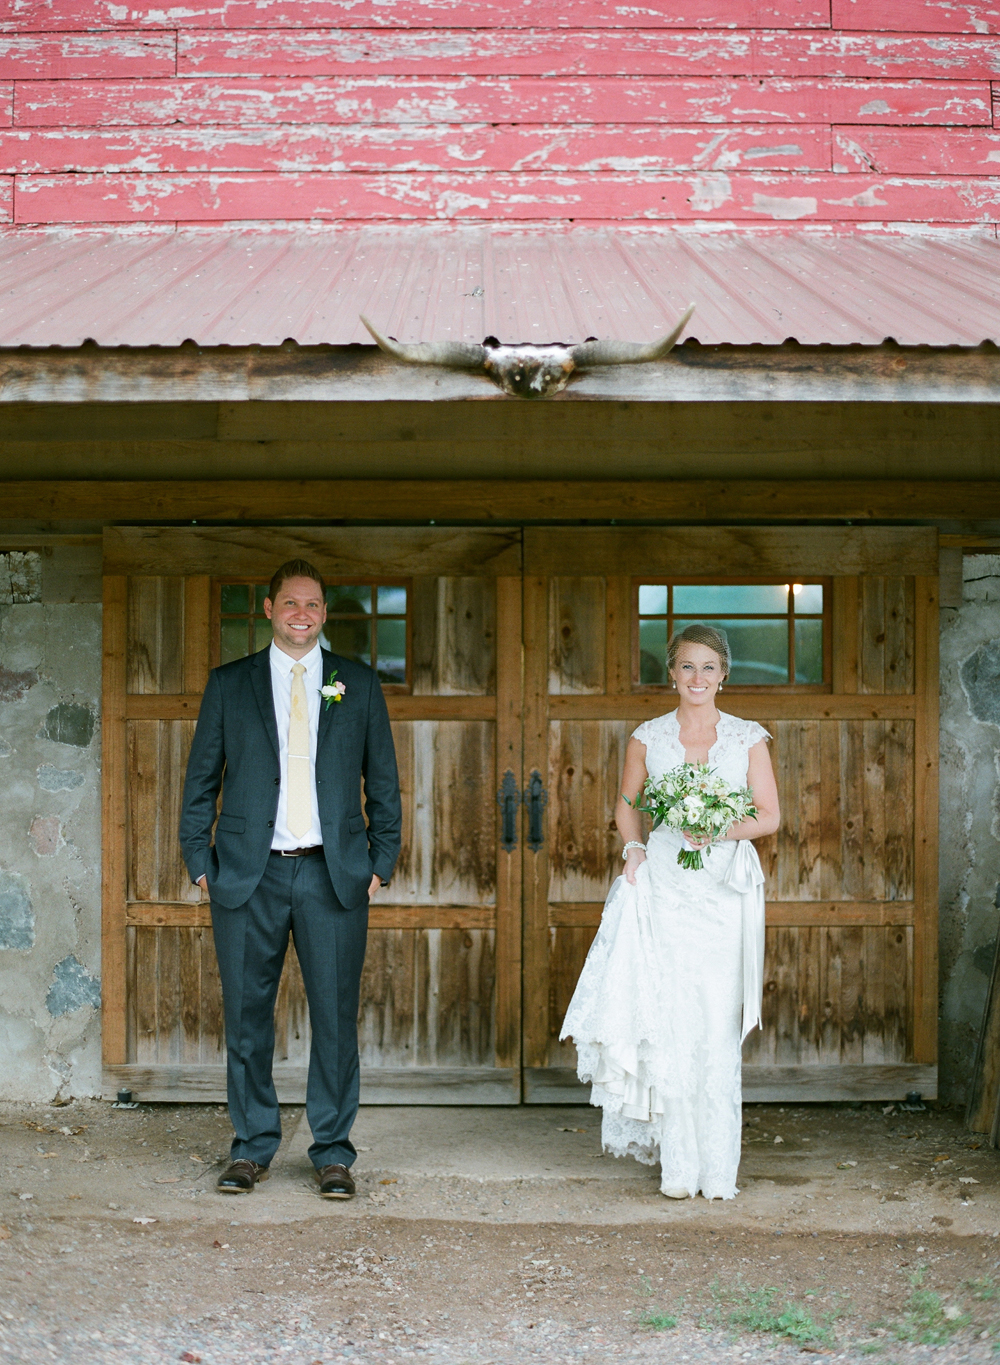 munson-bridge-winery-wedding-034